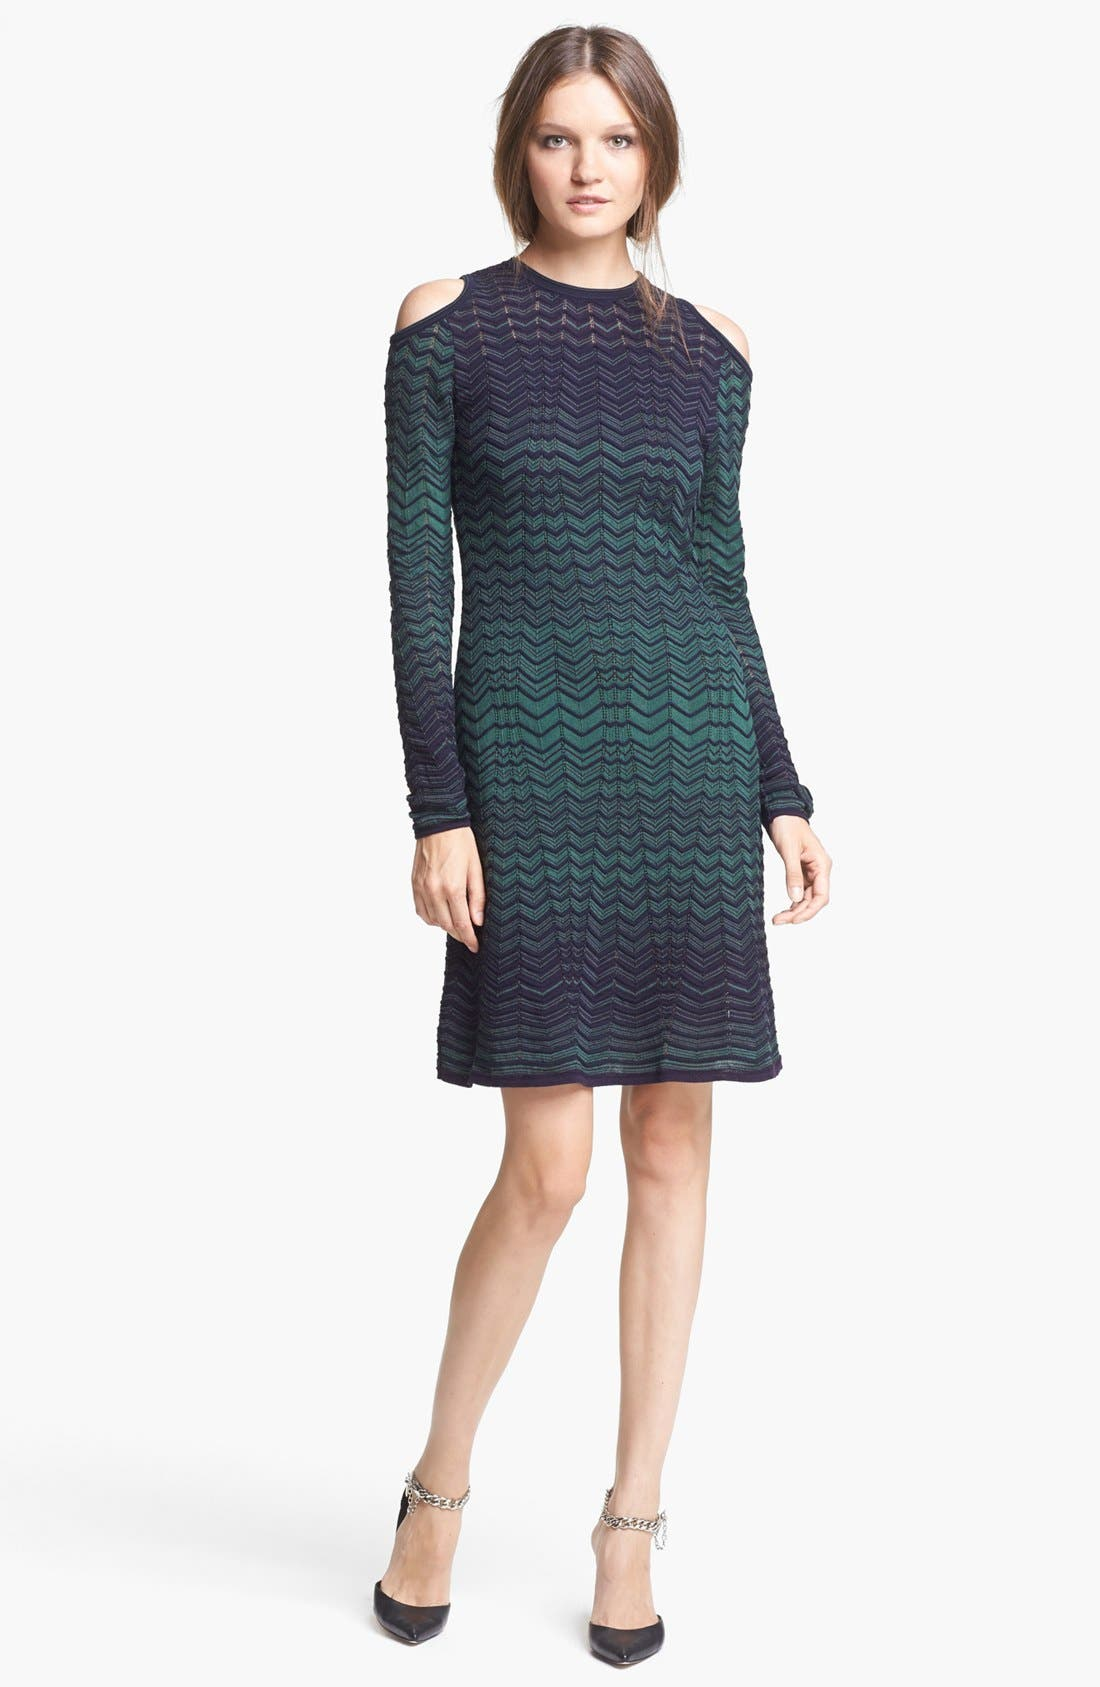 Alternate Image 1 Selected - M Missoni Cold Shoulder Zigzag Knit Dress